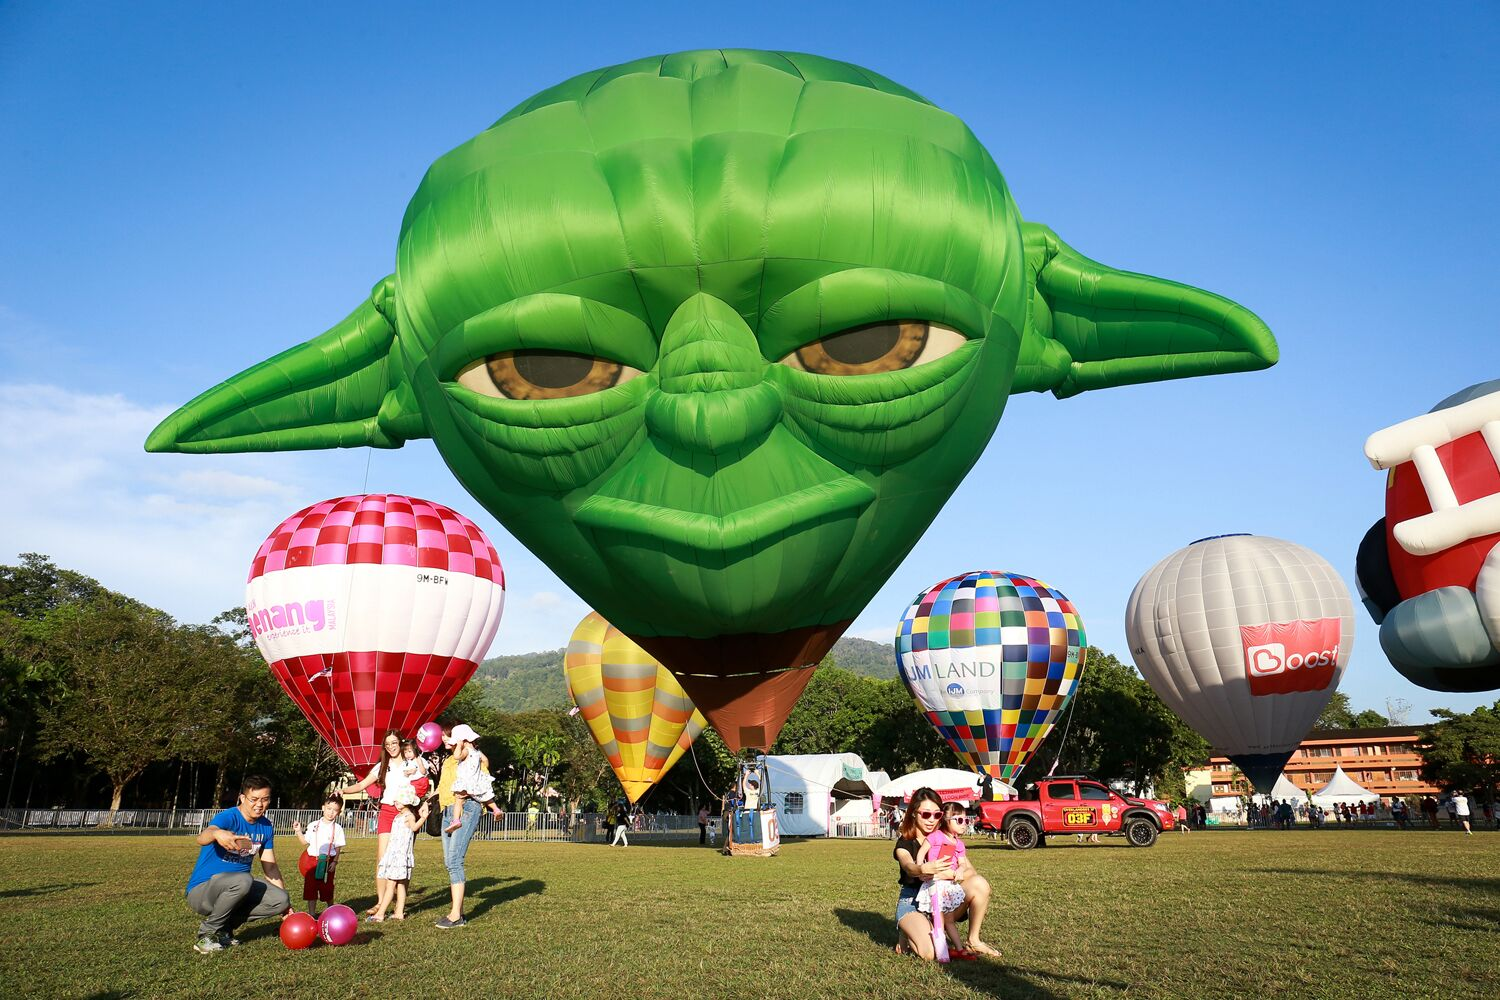 They resurrected Yoda for this event.